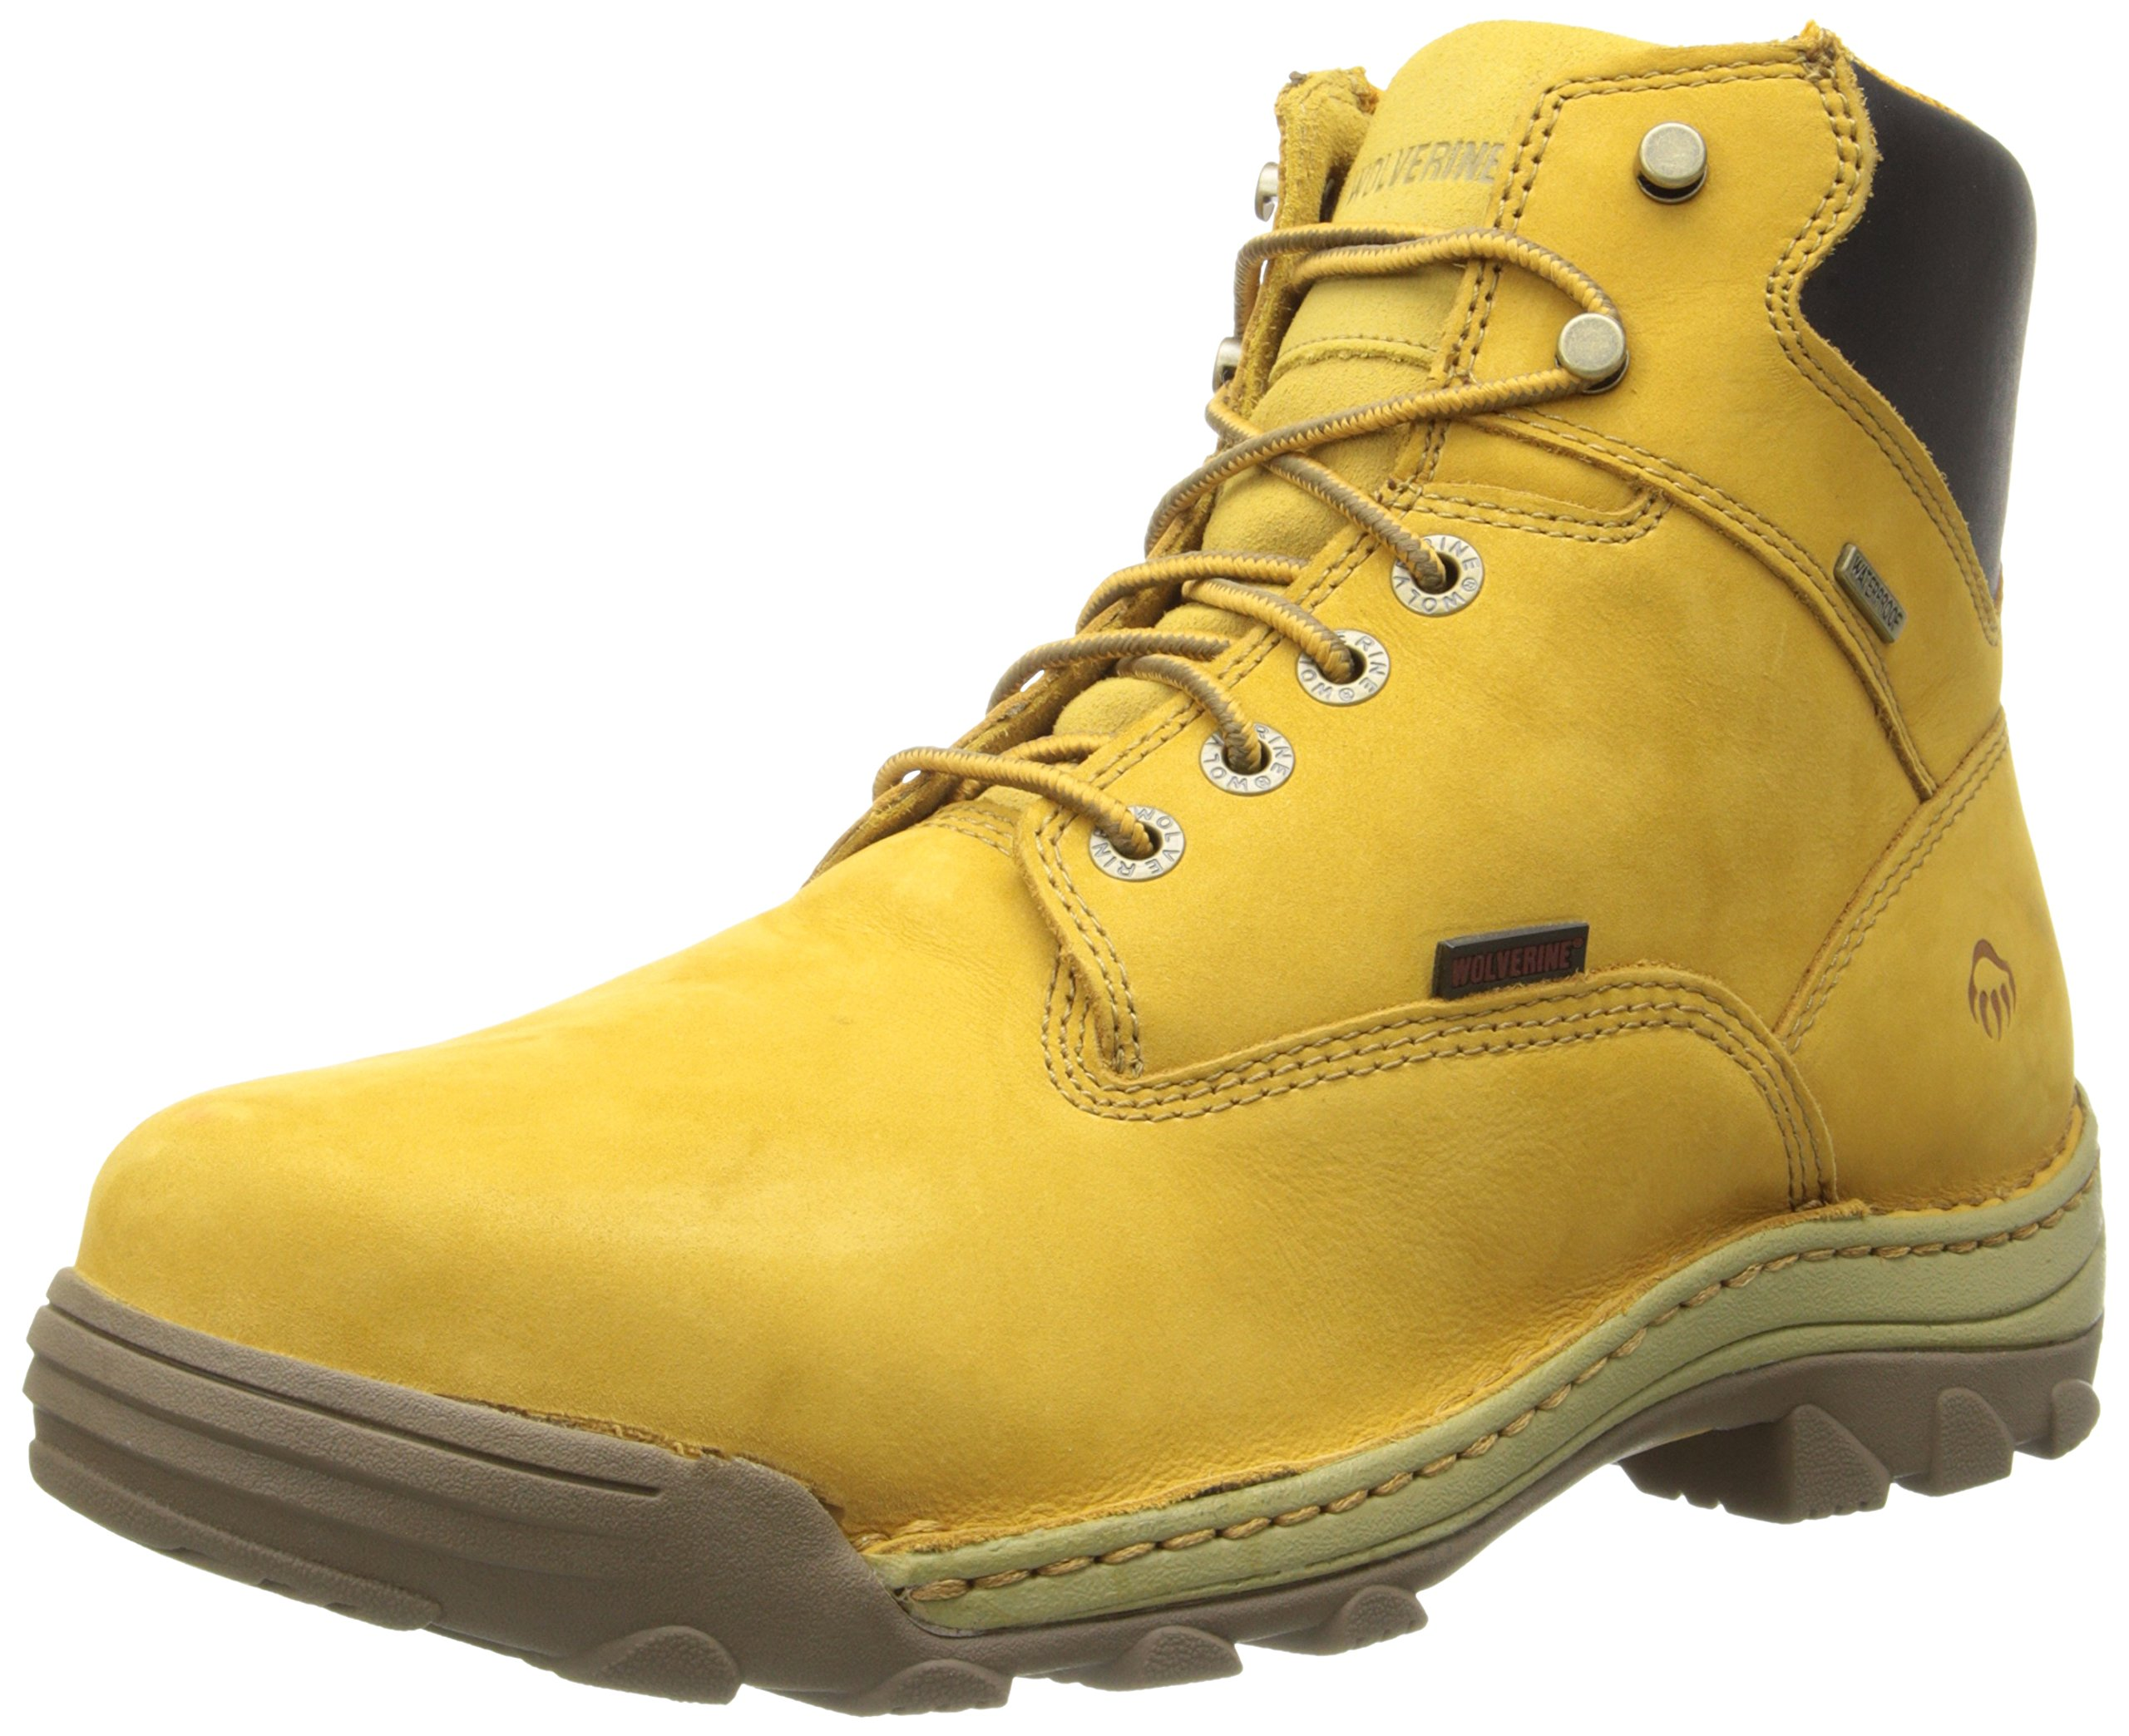 Wolverine Men's W04780 Dublin Boot, Wheat, 13 M US by Wolverine